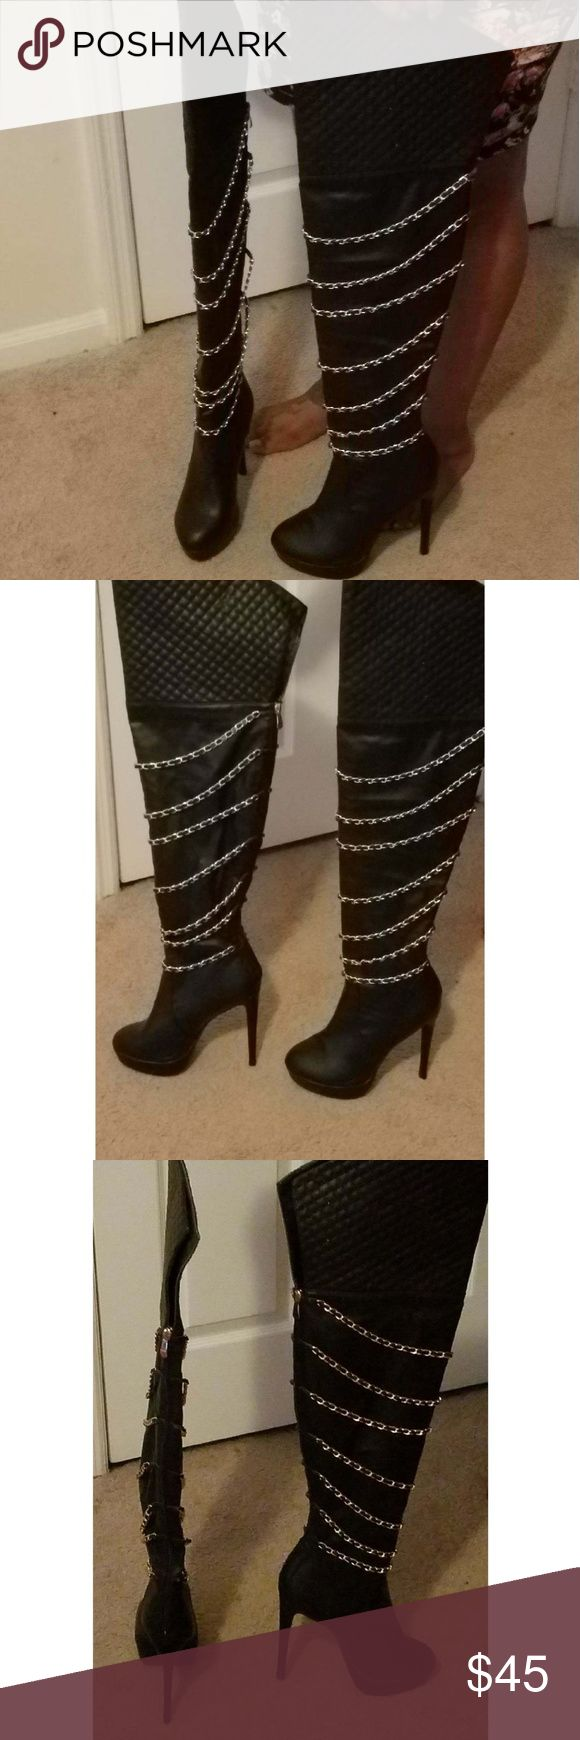 Quilted Top Thigh High Platform Heeled Boots Sexy black thigh high boots heeled boots with gold chain never worn (best for a narrow foot & slim calves) Shoes Over the Knee Boots